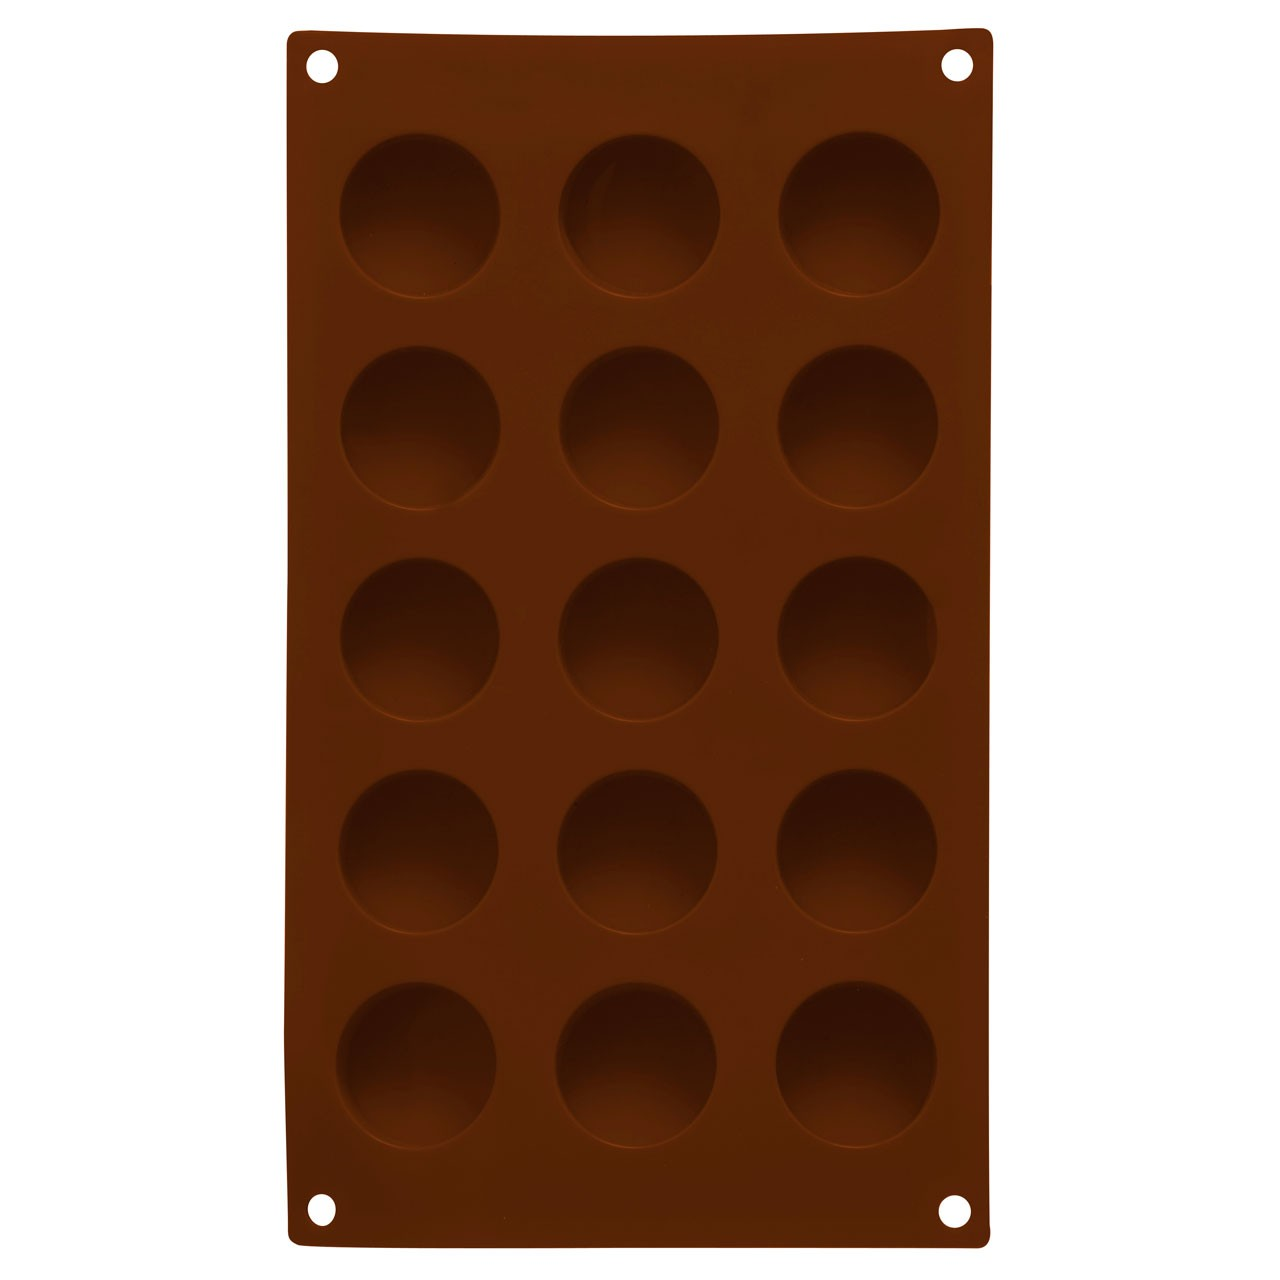 15 Round Chocolate Mould Tray - Brown